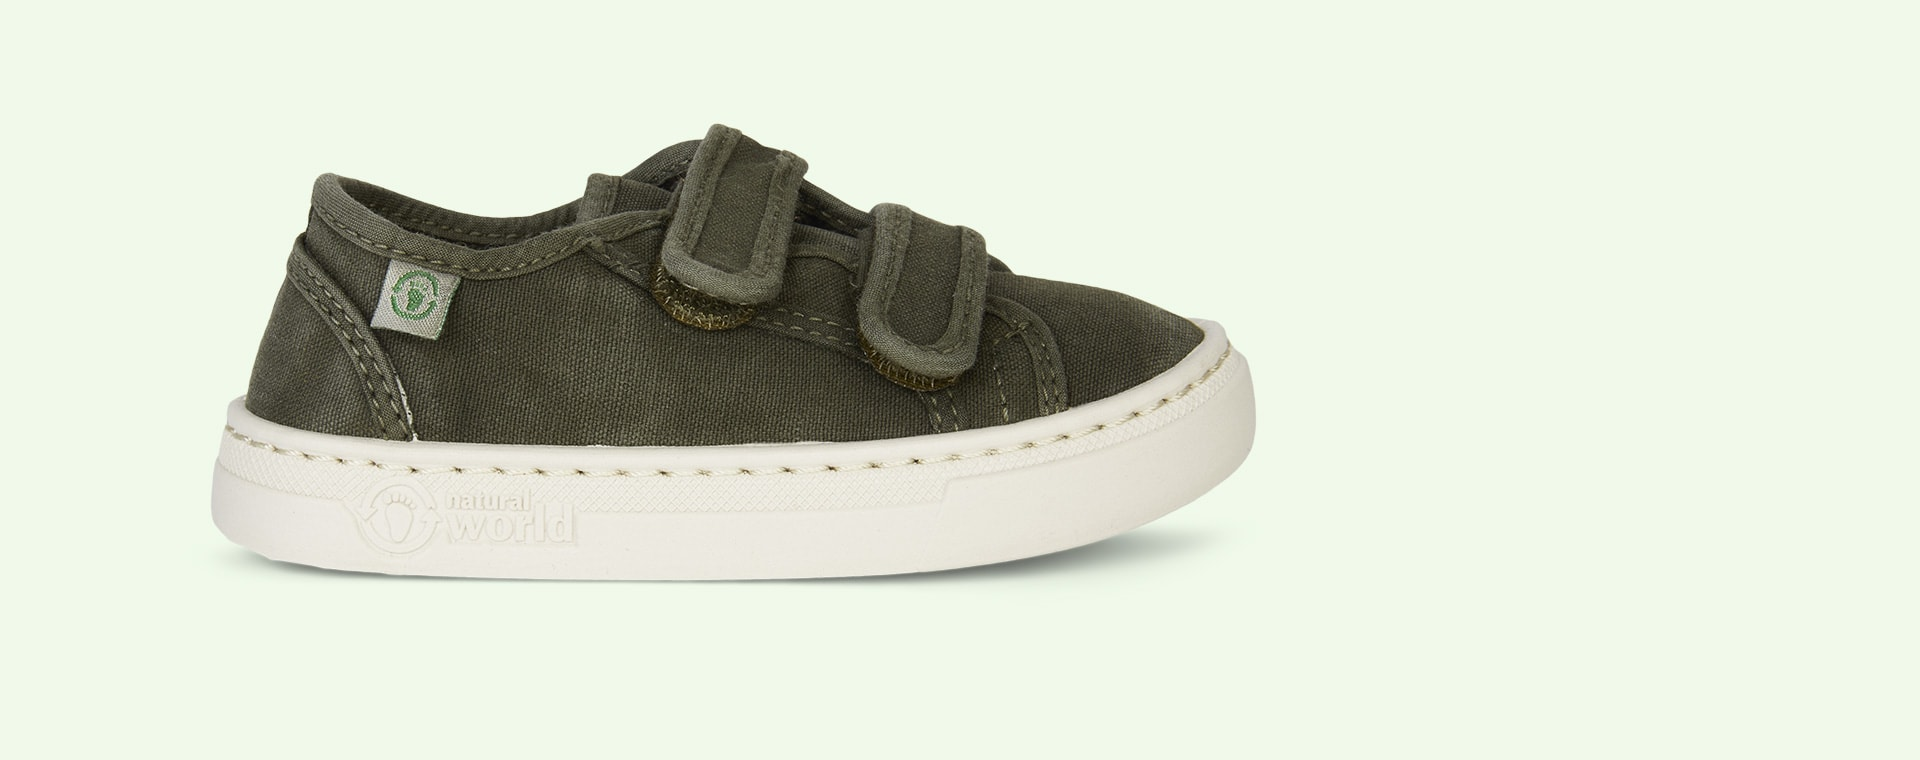 Khaki Natural World Velcro Canvas Trainer